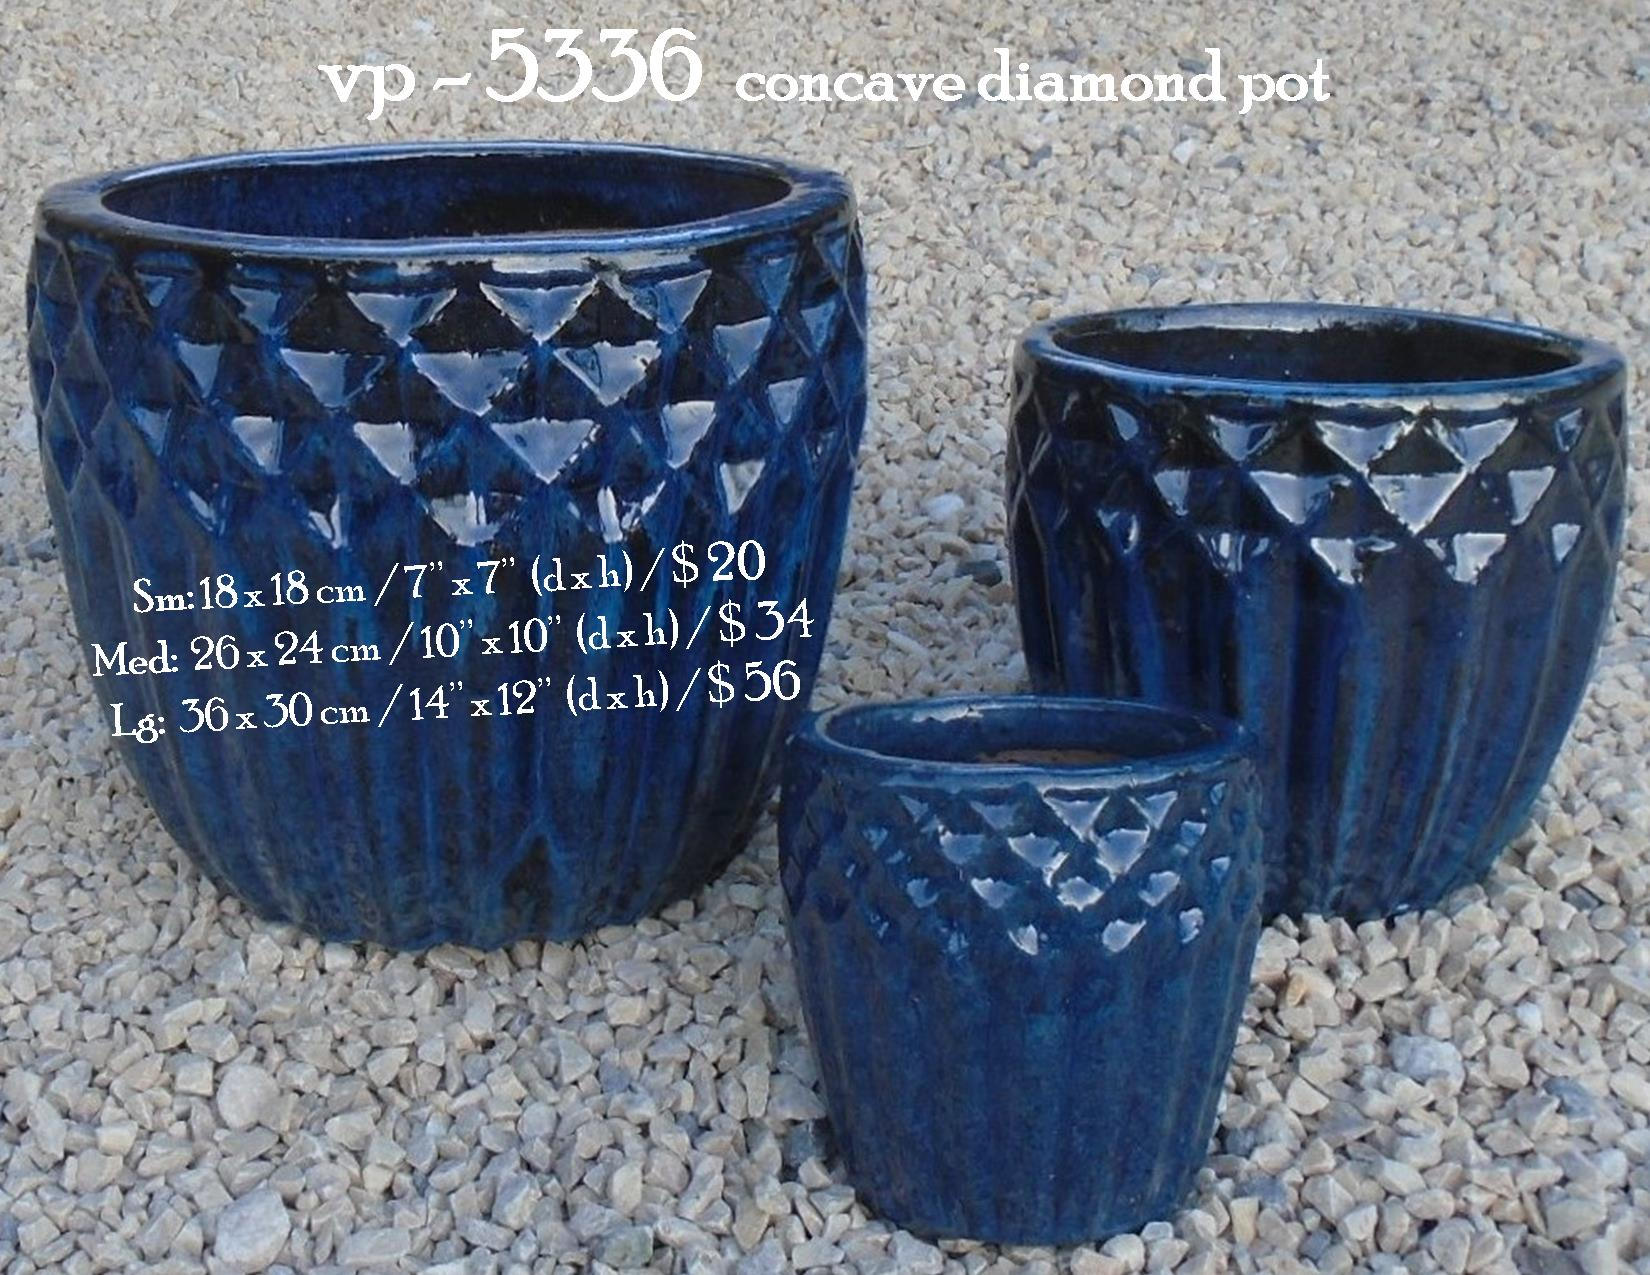 vp - 5336  concave diamond pot